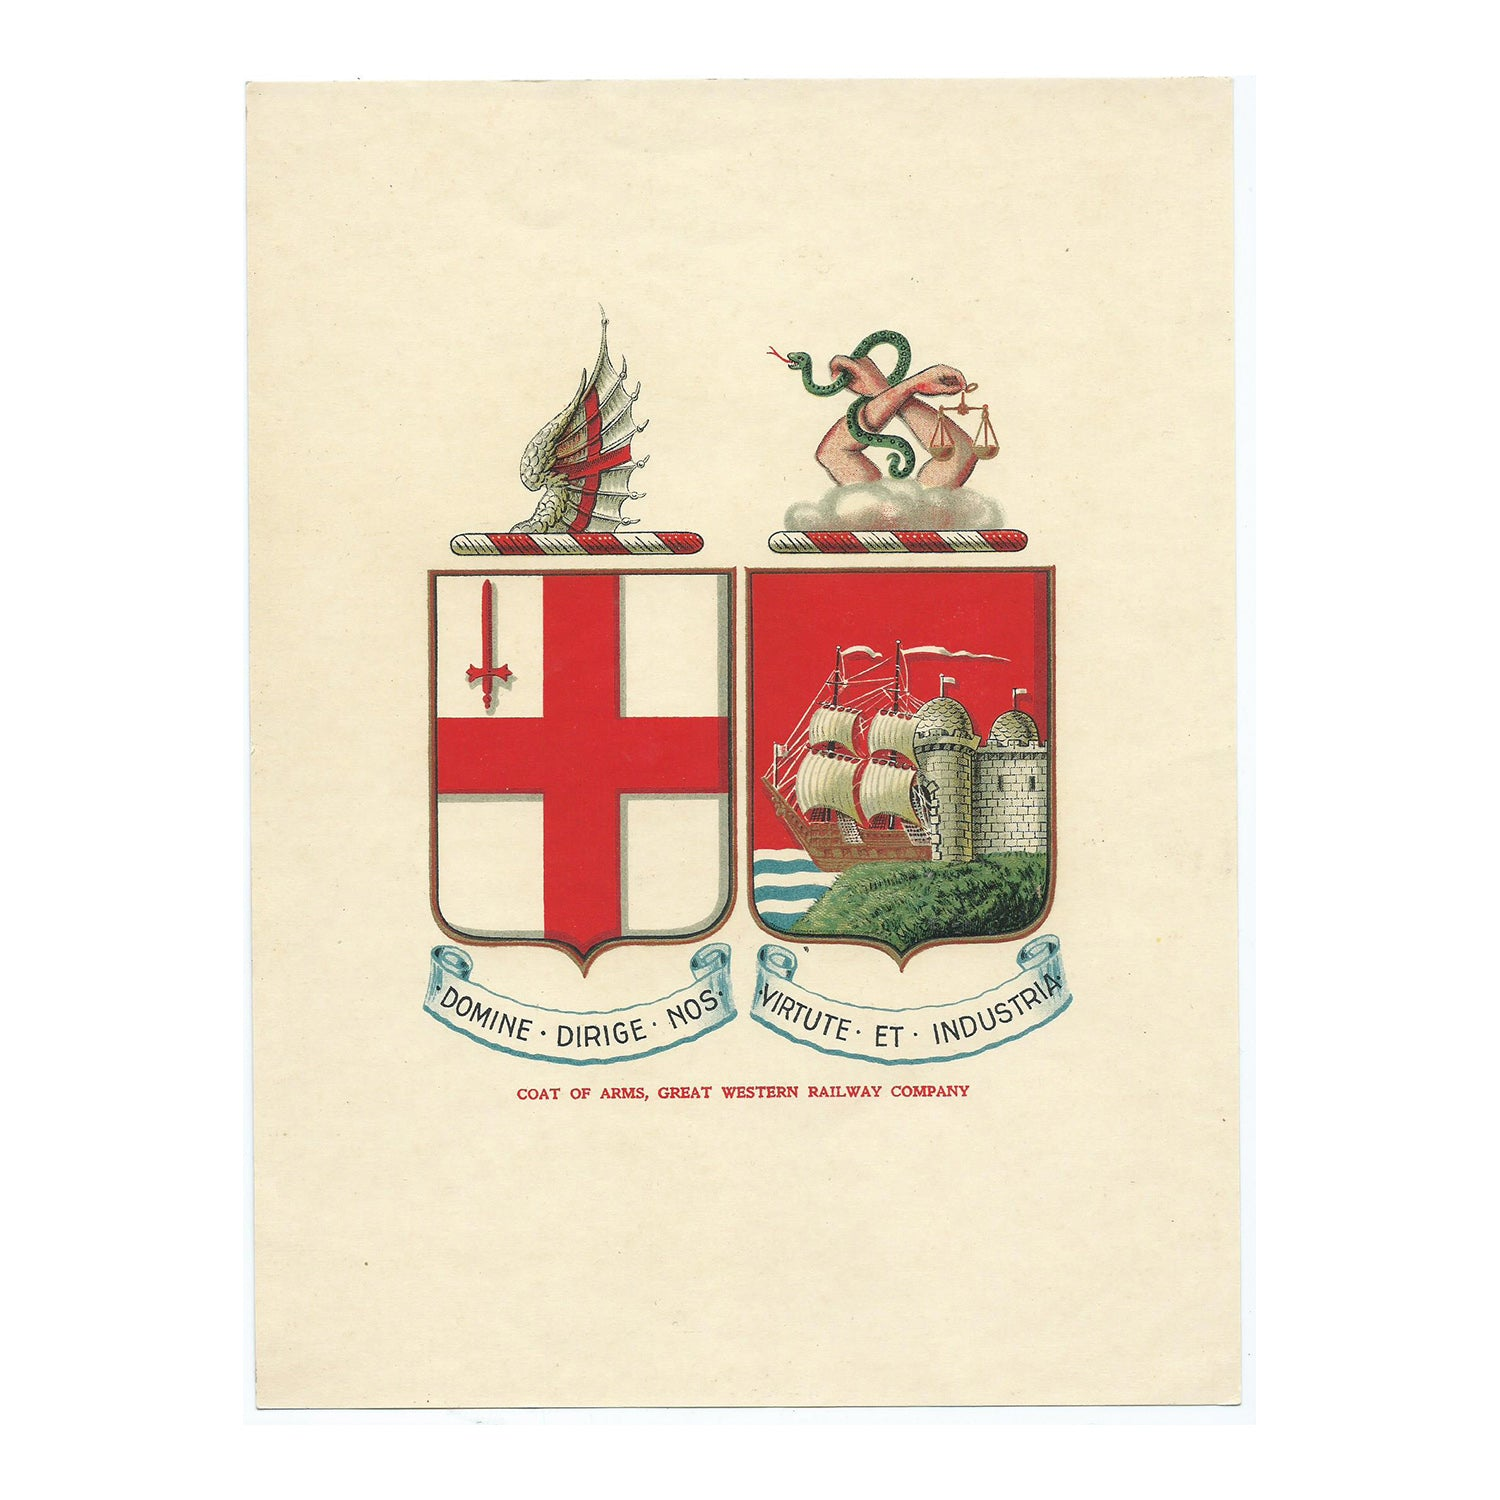 Original Great Western Railway artwork, proof and print of company crest, 1911